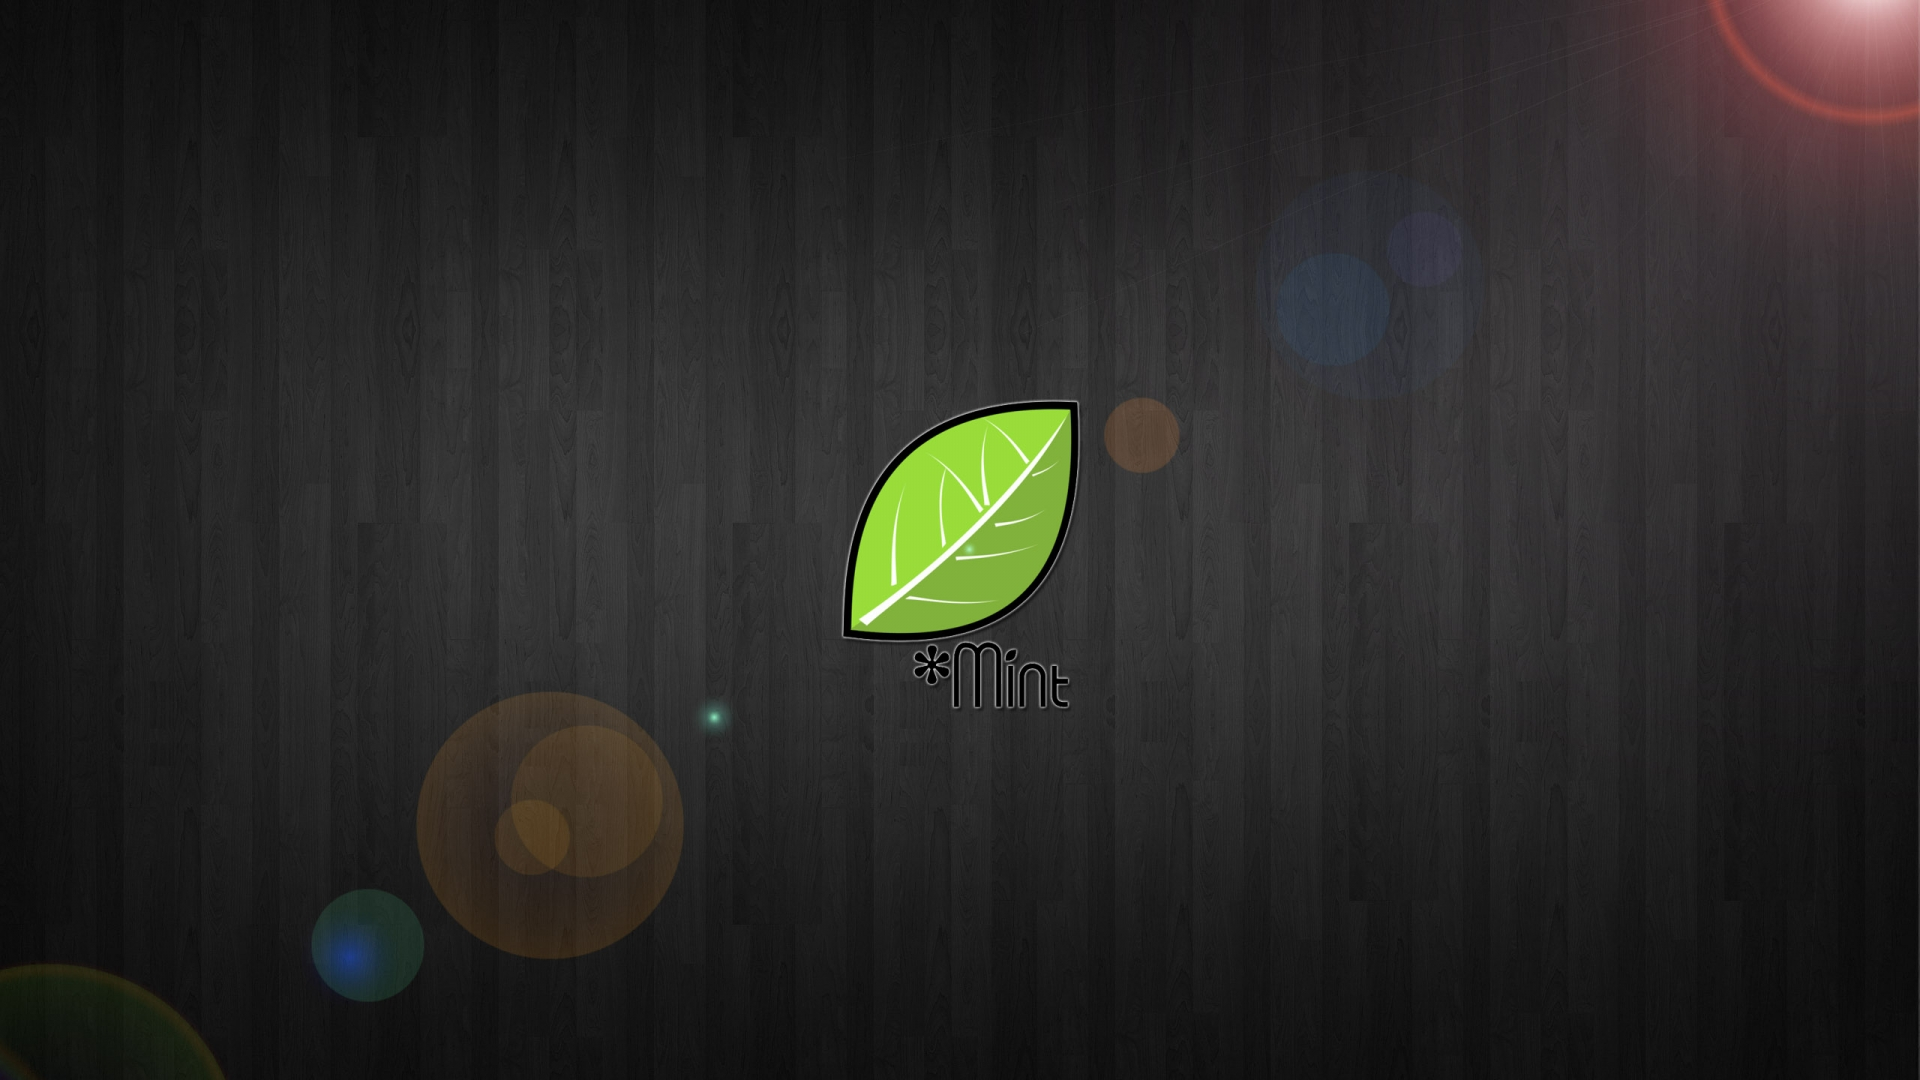 Cool Linux Wallpapers Wallpaper 1920x1080